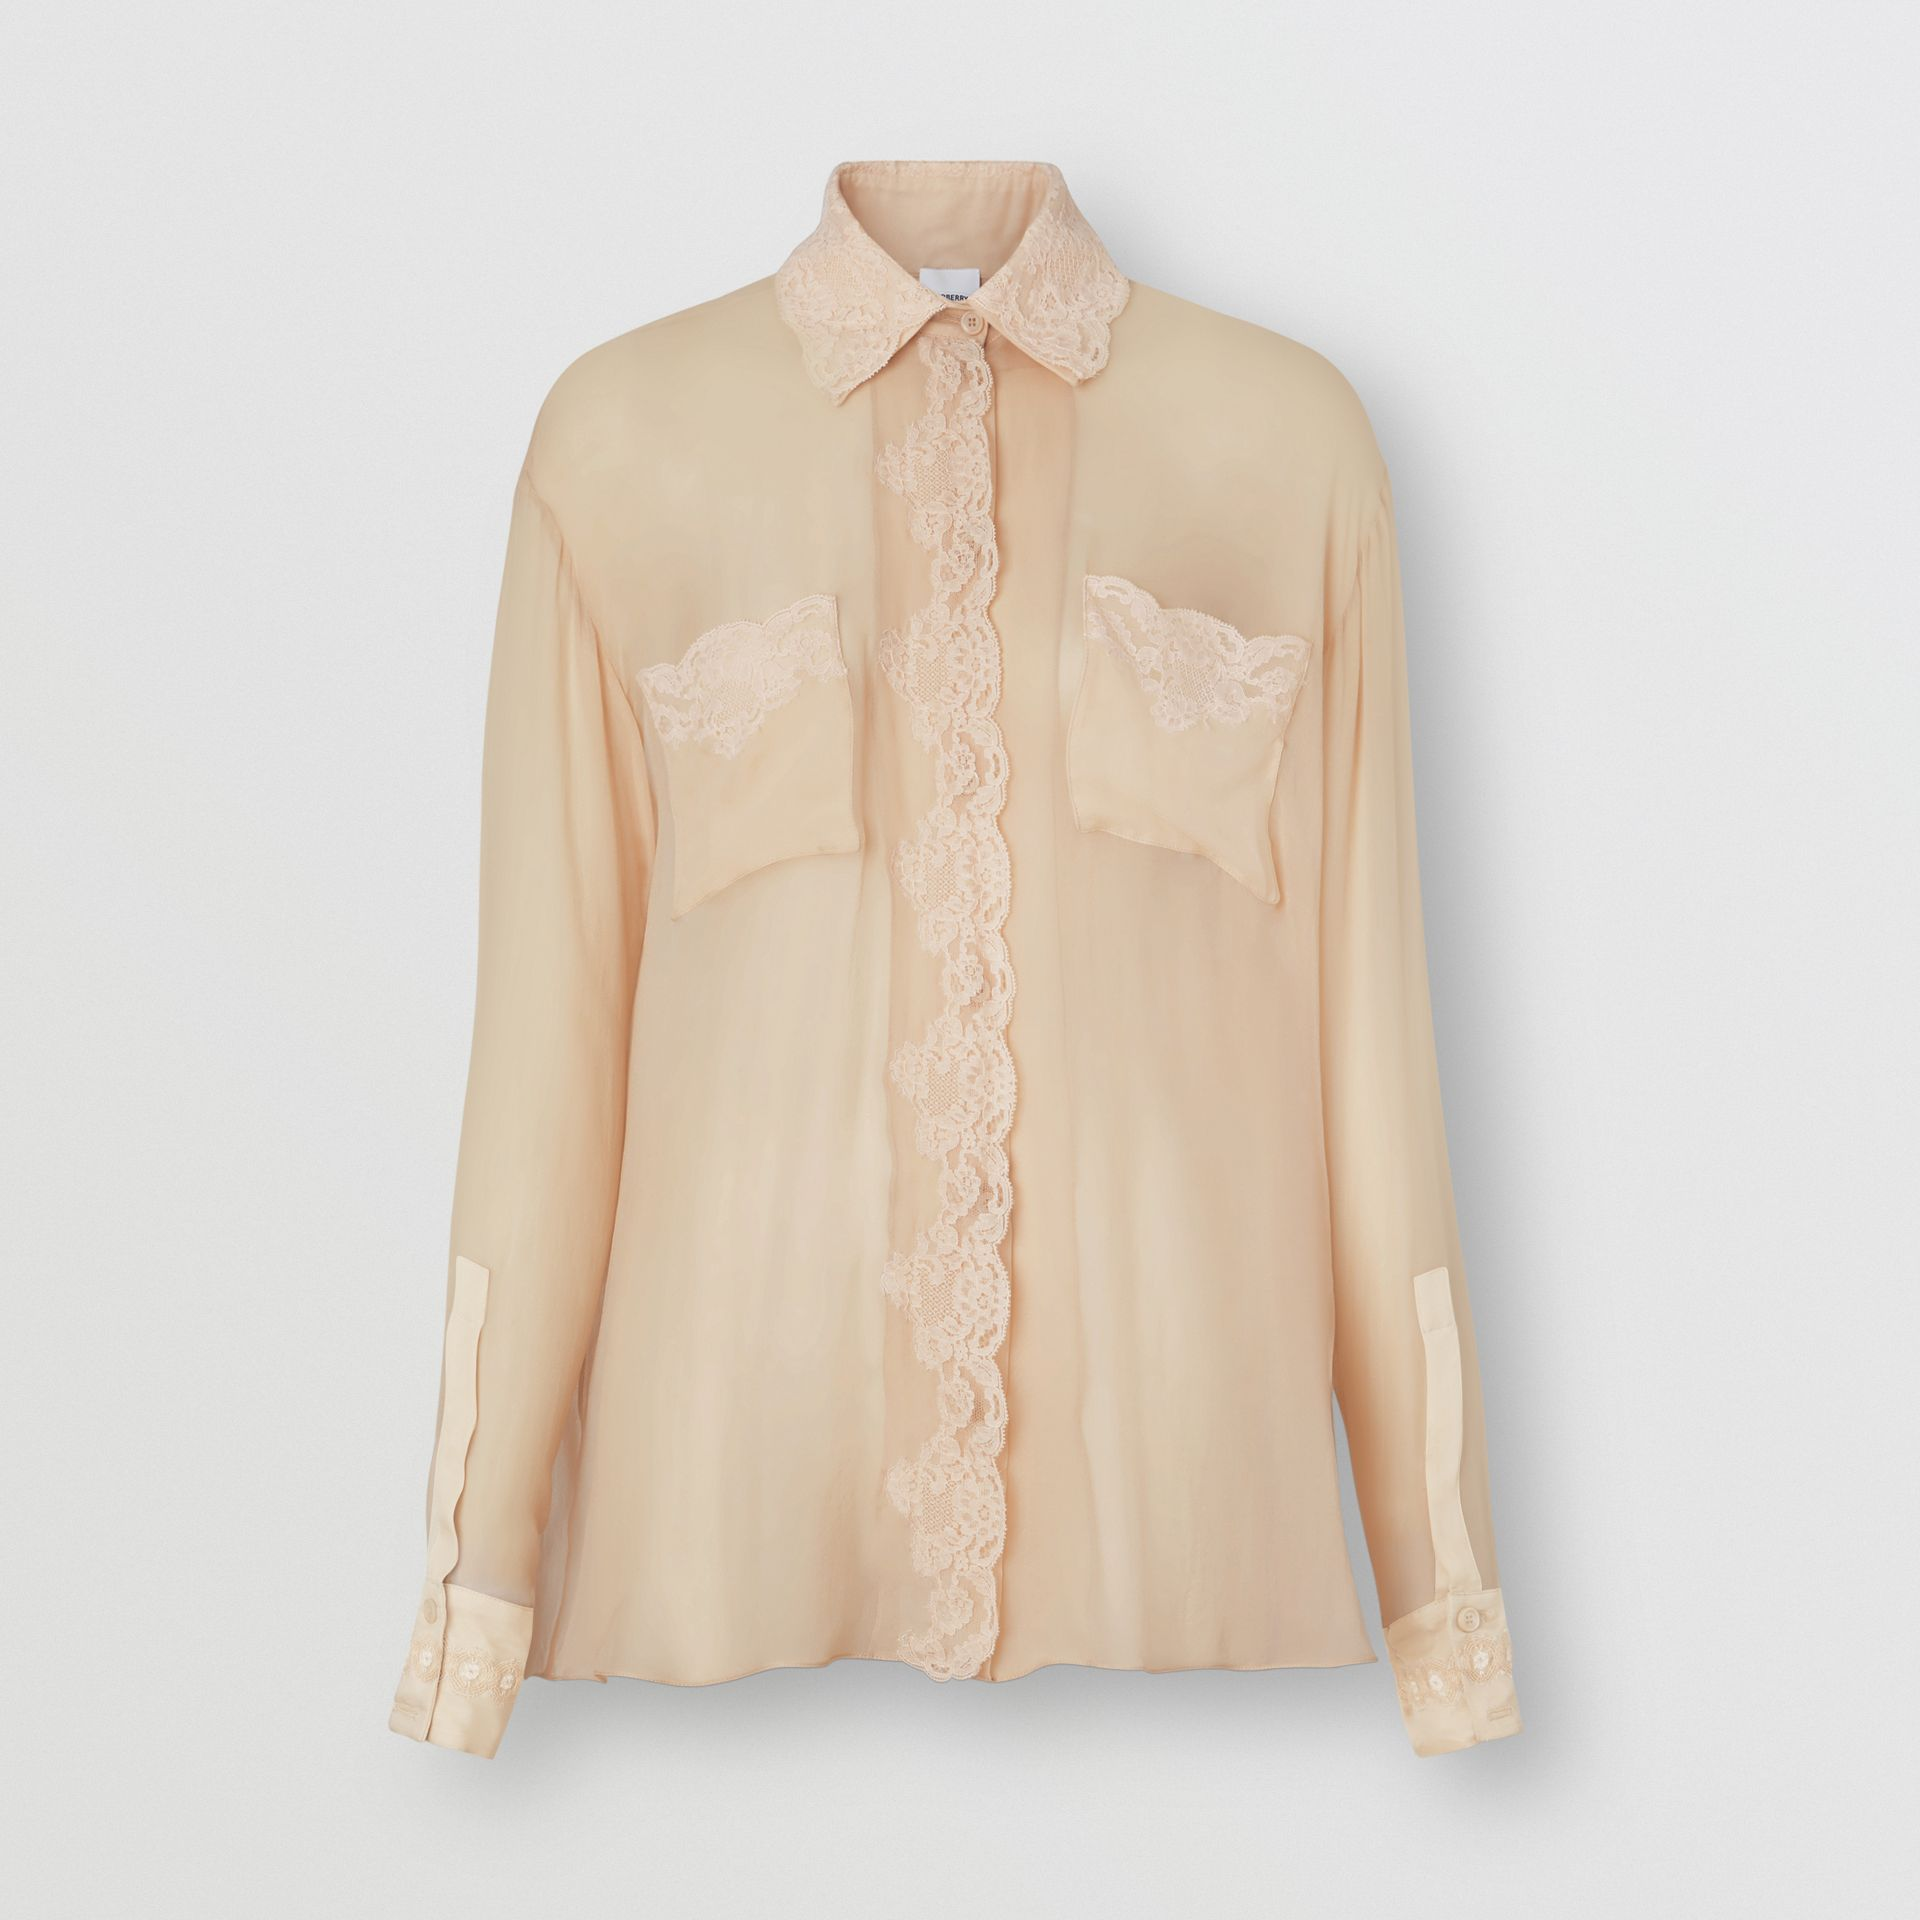 Lace Detail Silk Chiffon Oversized Shirt in Soft Peach - Women | Burberry - gallery image 3